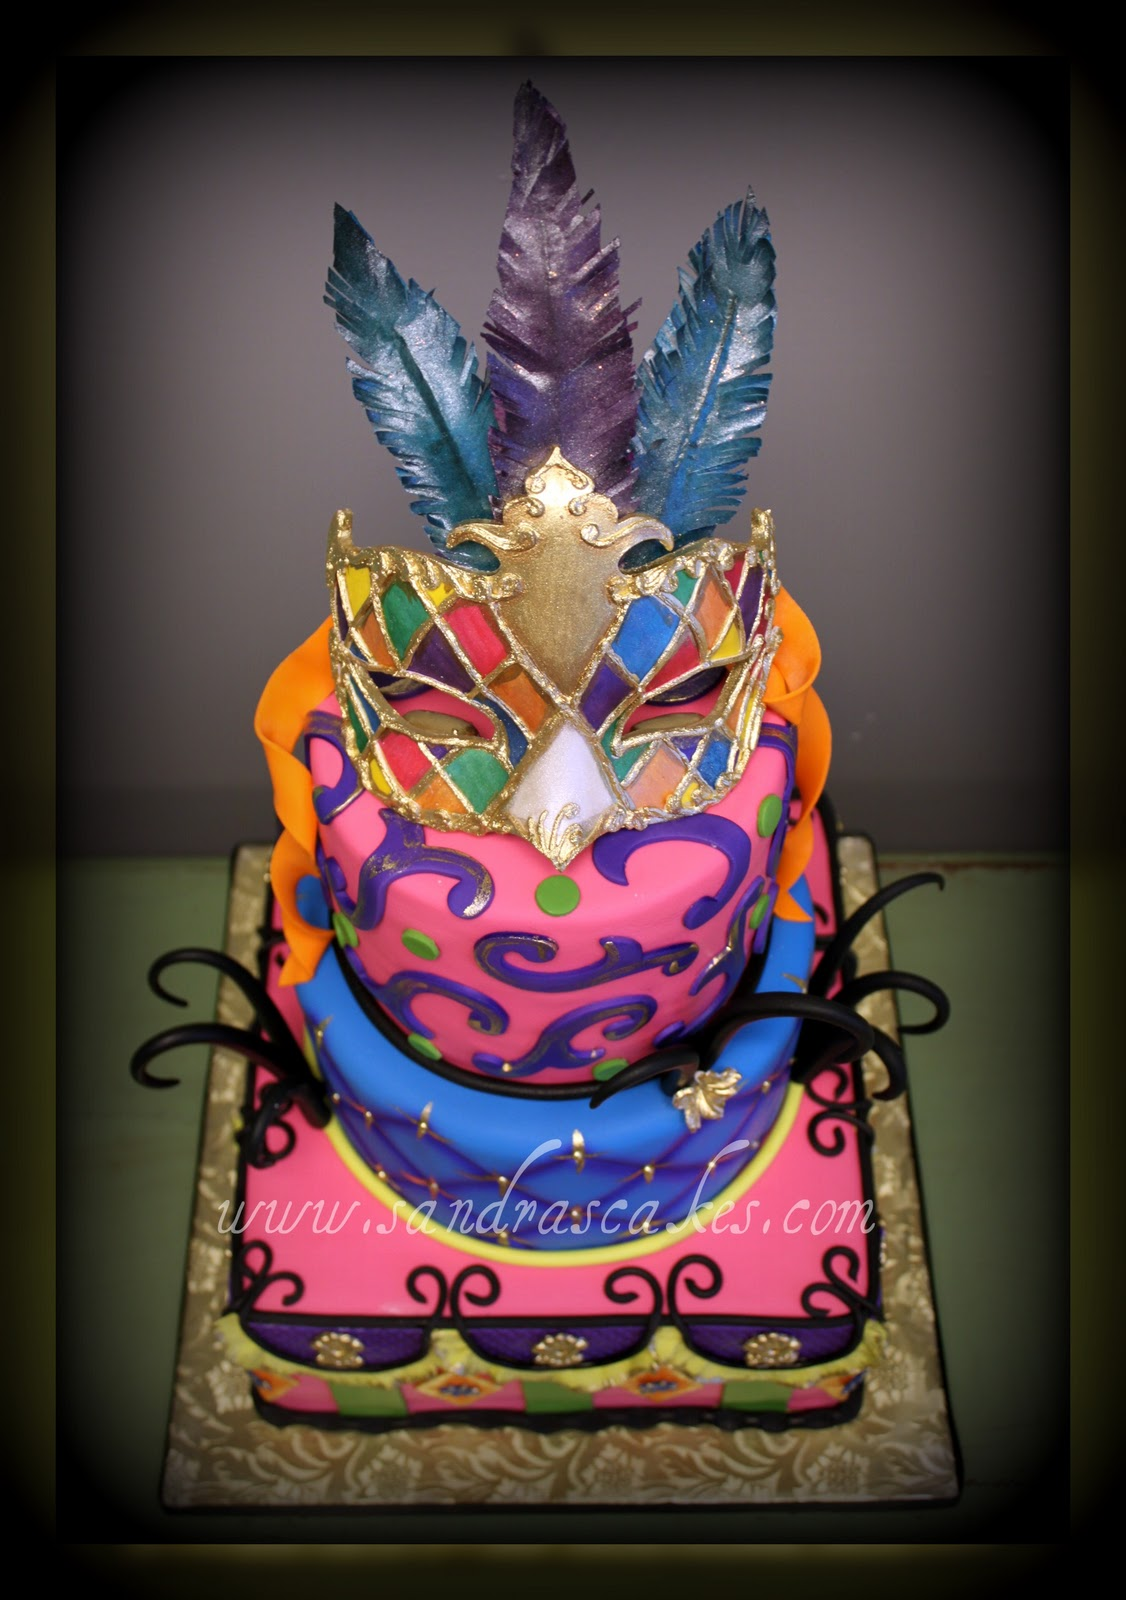 Beautiful Venetian Masquerade Birthday Cake